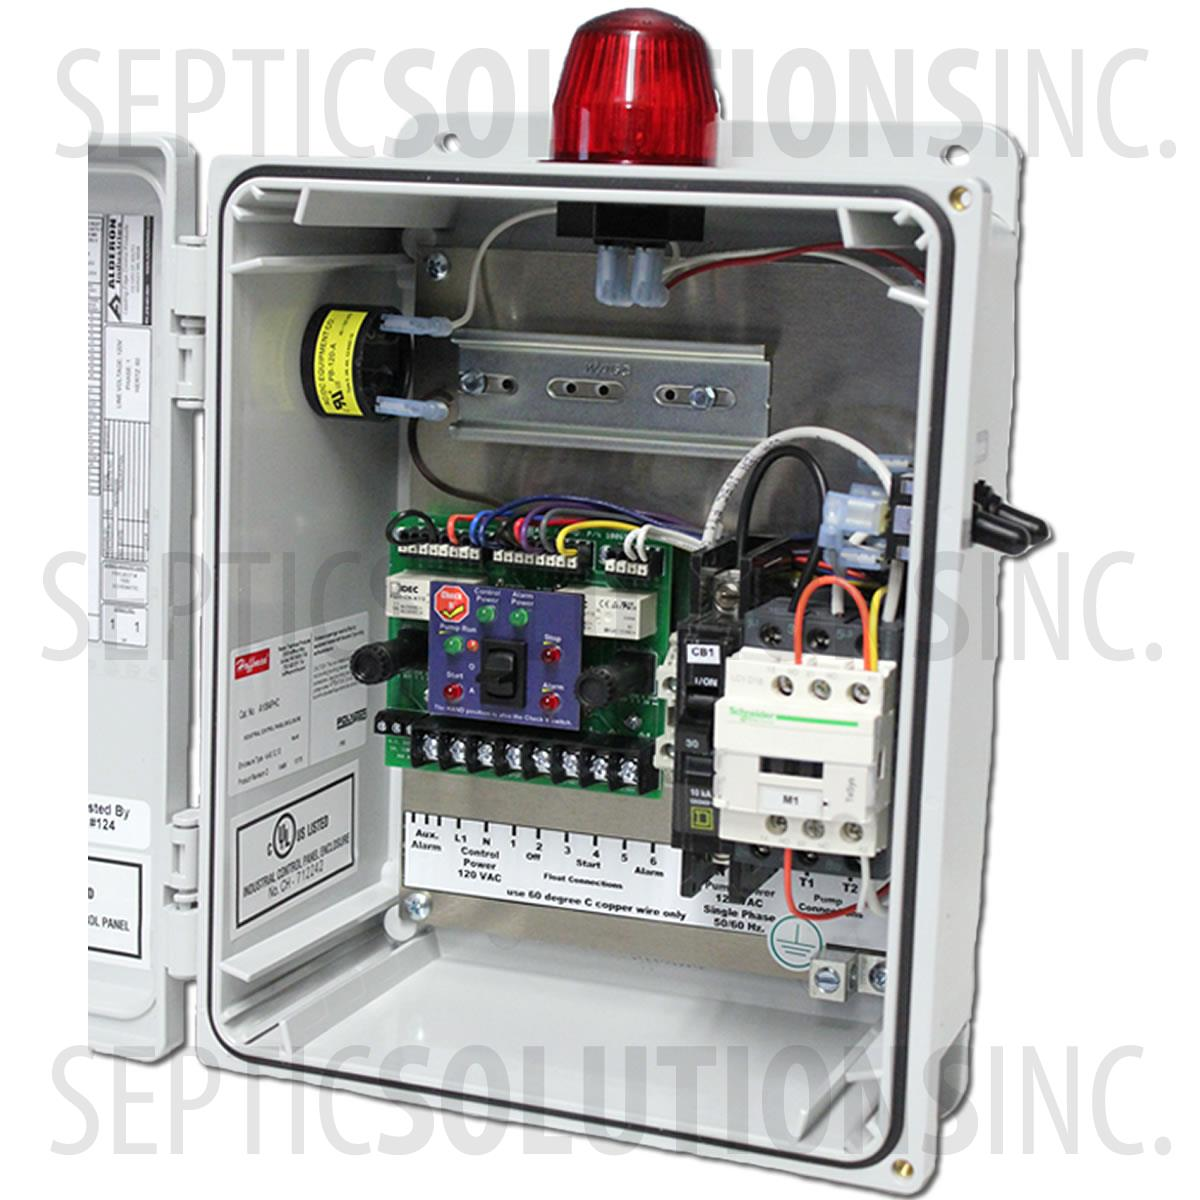 1001_1?w=600 alderon check it simplex pump station control panel free shipping fpz blower wiring diagram at crackthecode.co